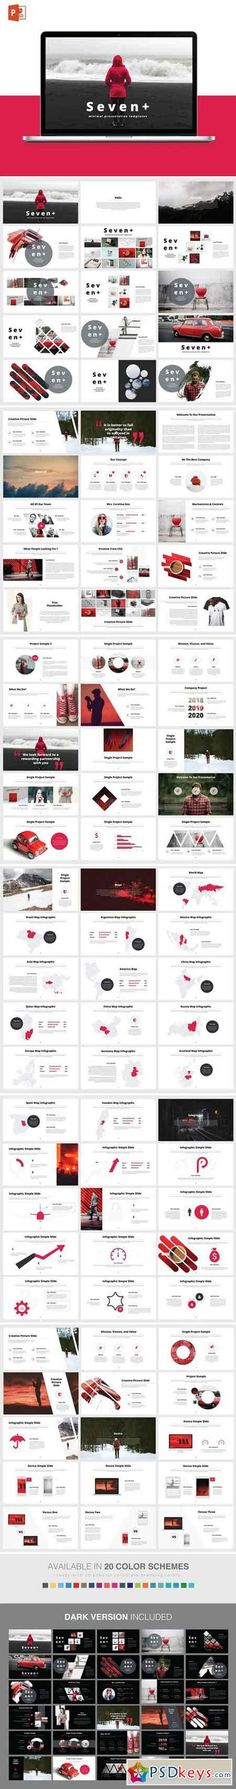 SEVENT+ POWERPOINT Template #business, #templates